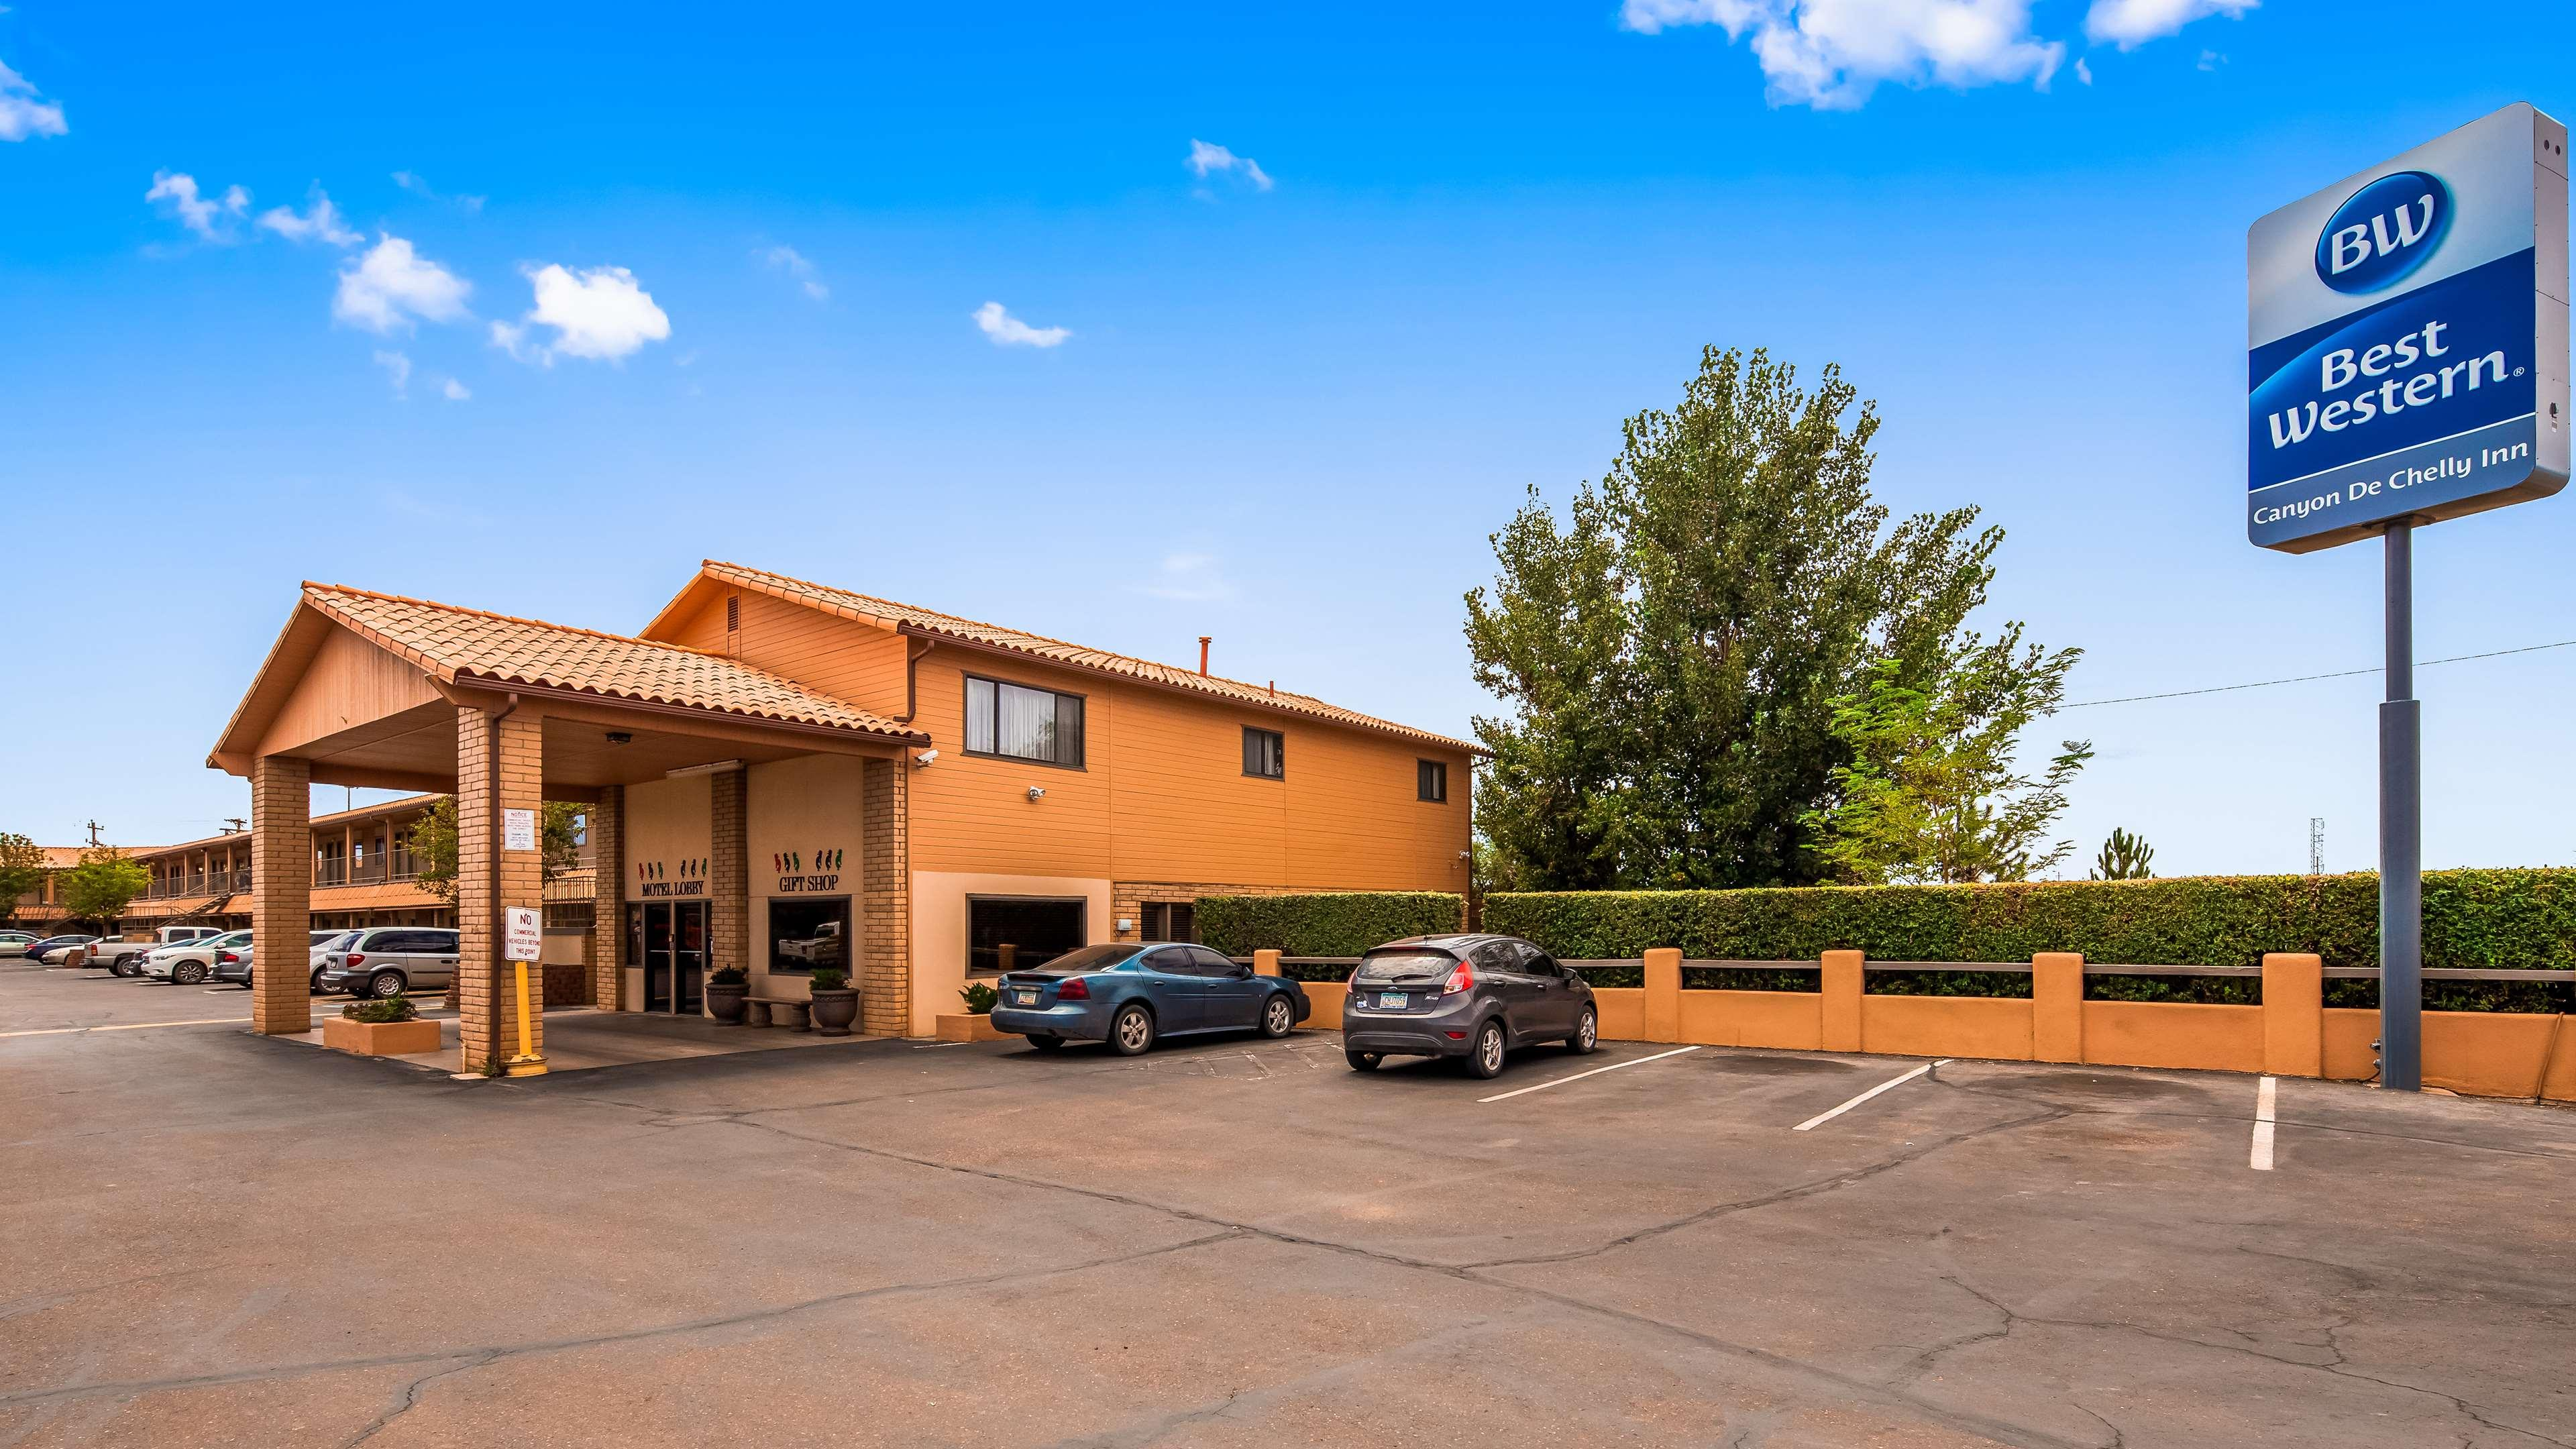 Best Western Canyon De Chelly Inn, Apache